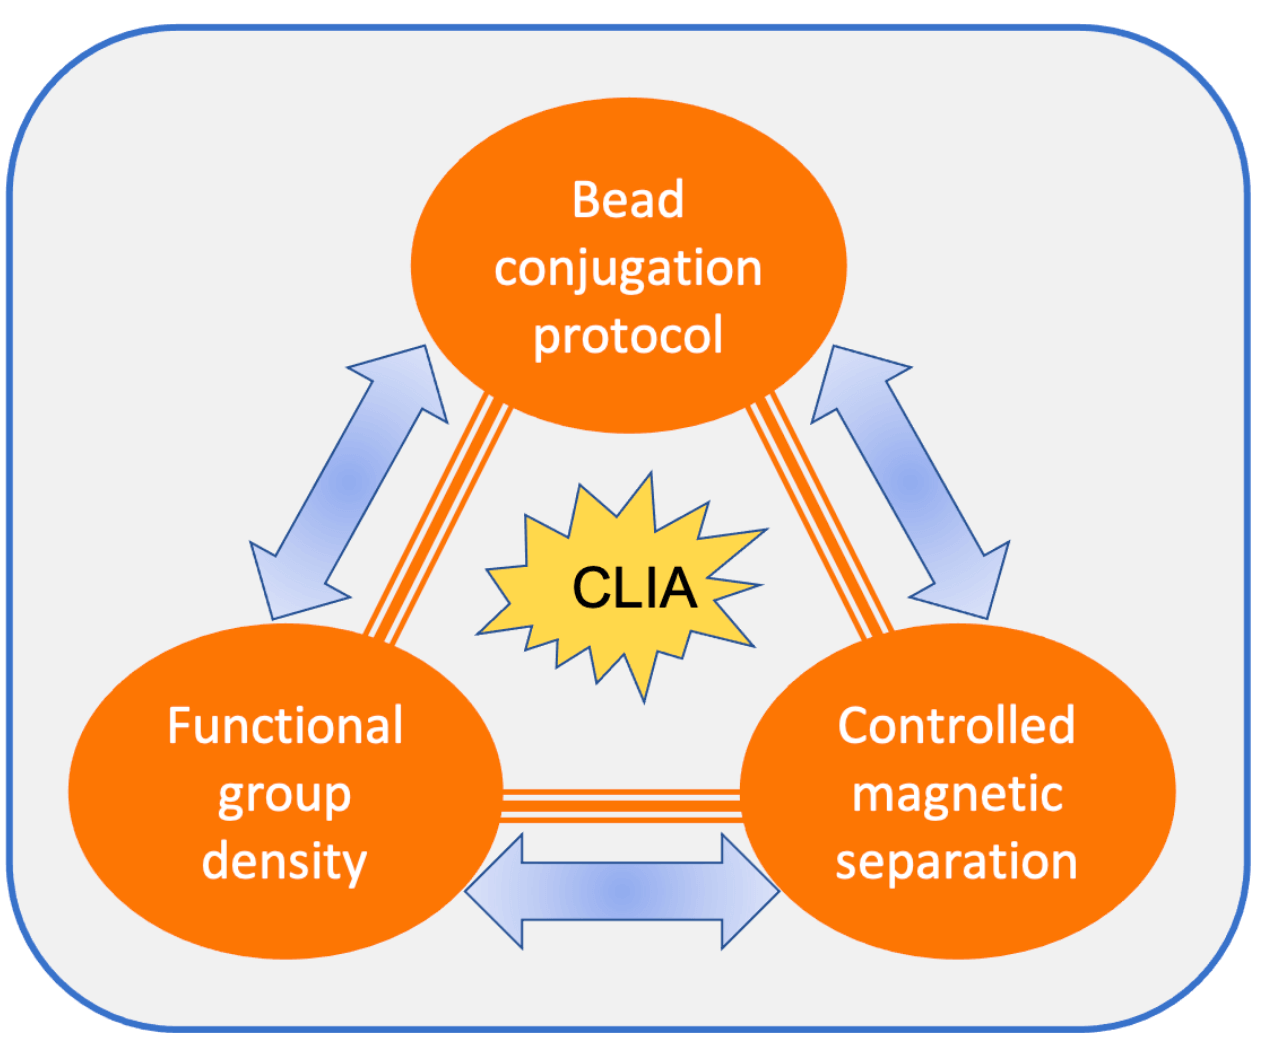 Guide for successful magnetic bead conjugation